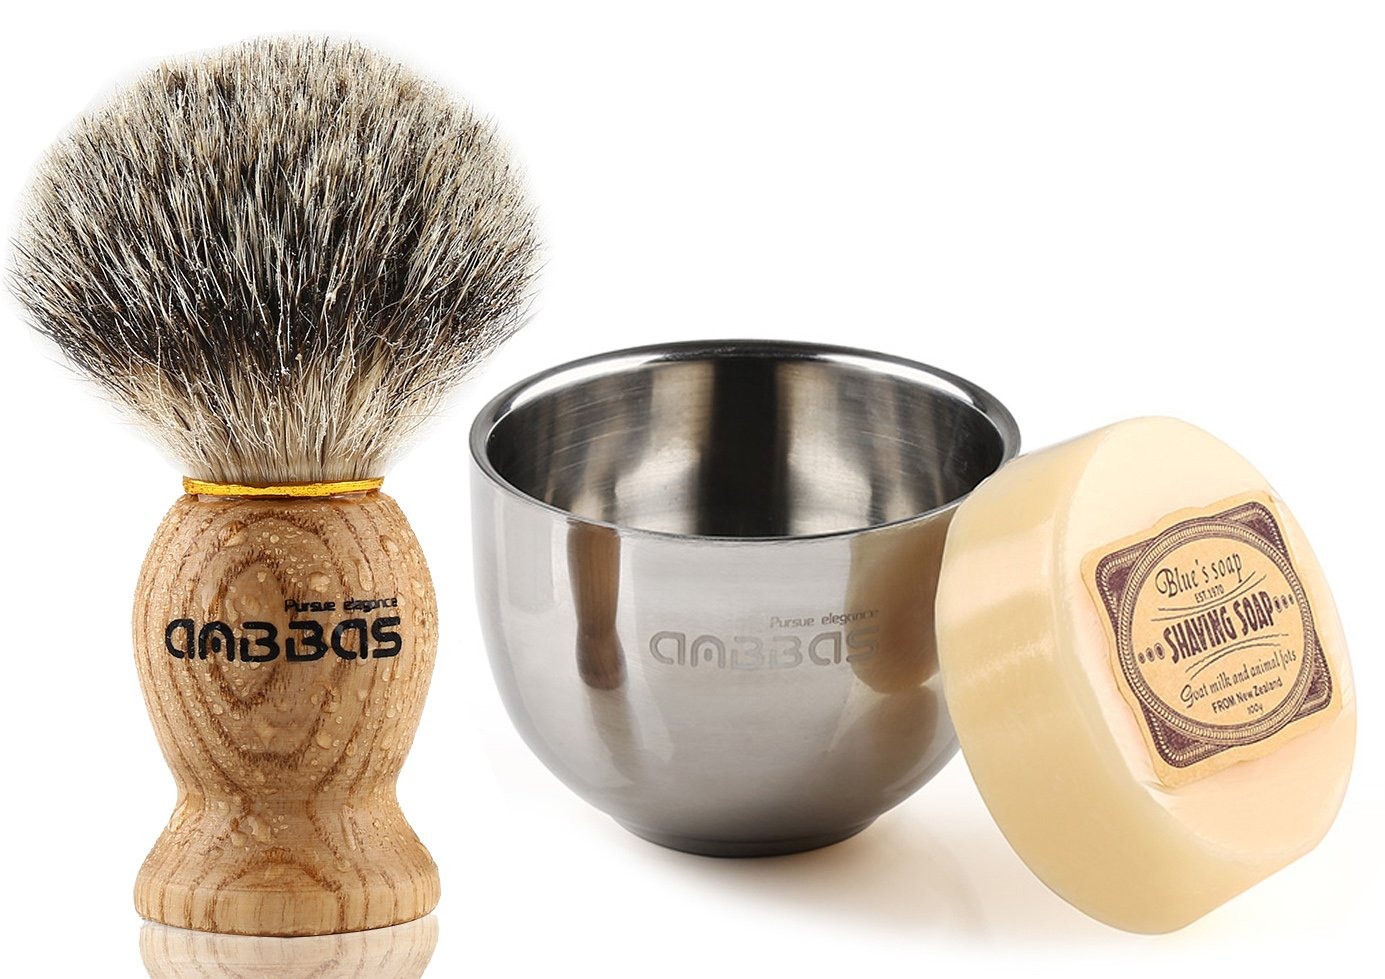 3IN1 Shaving Set, Anbbas 100% Pure Badger Shaving Brush Natural Manchurian Ash Wood Handle and 2 Layers Stainless Steel Shaving Bowl, with Goat Milk Soap 100g for Men Traditional